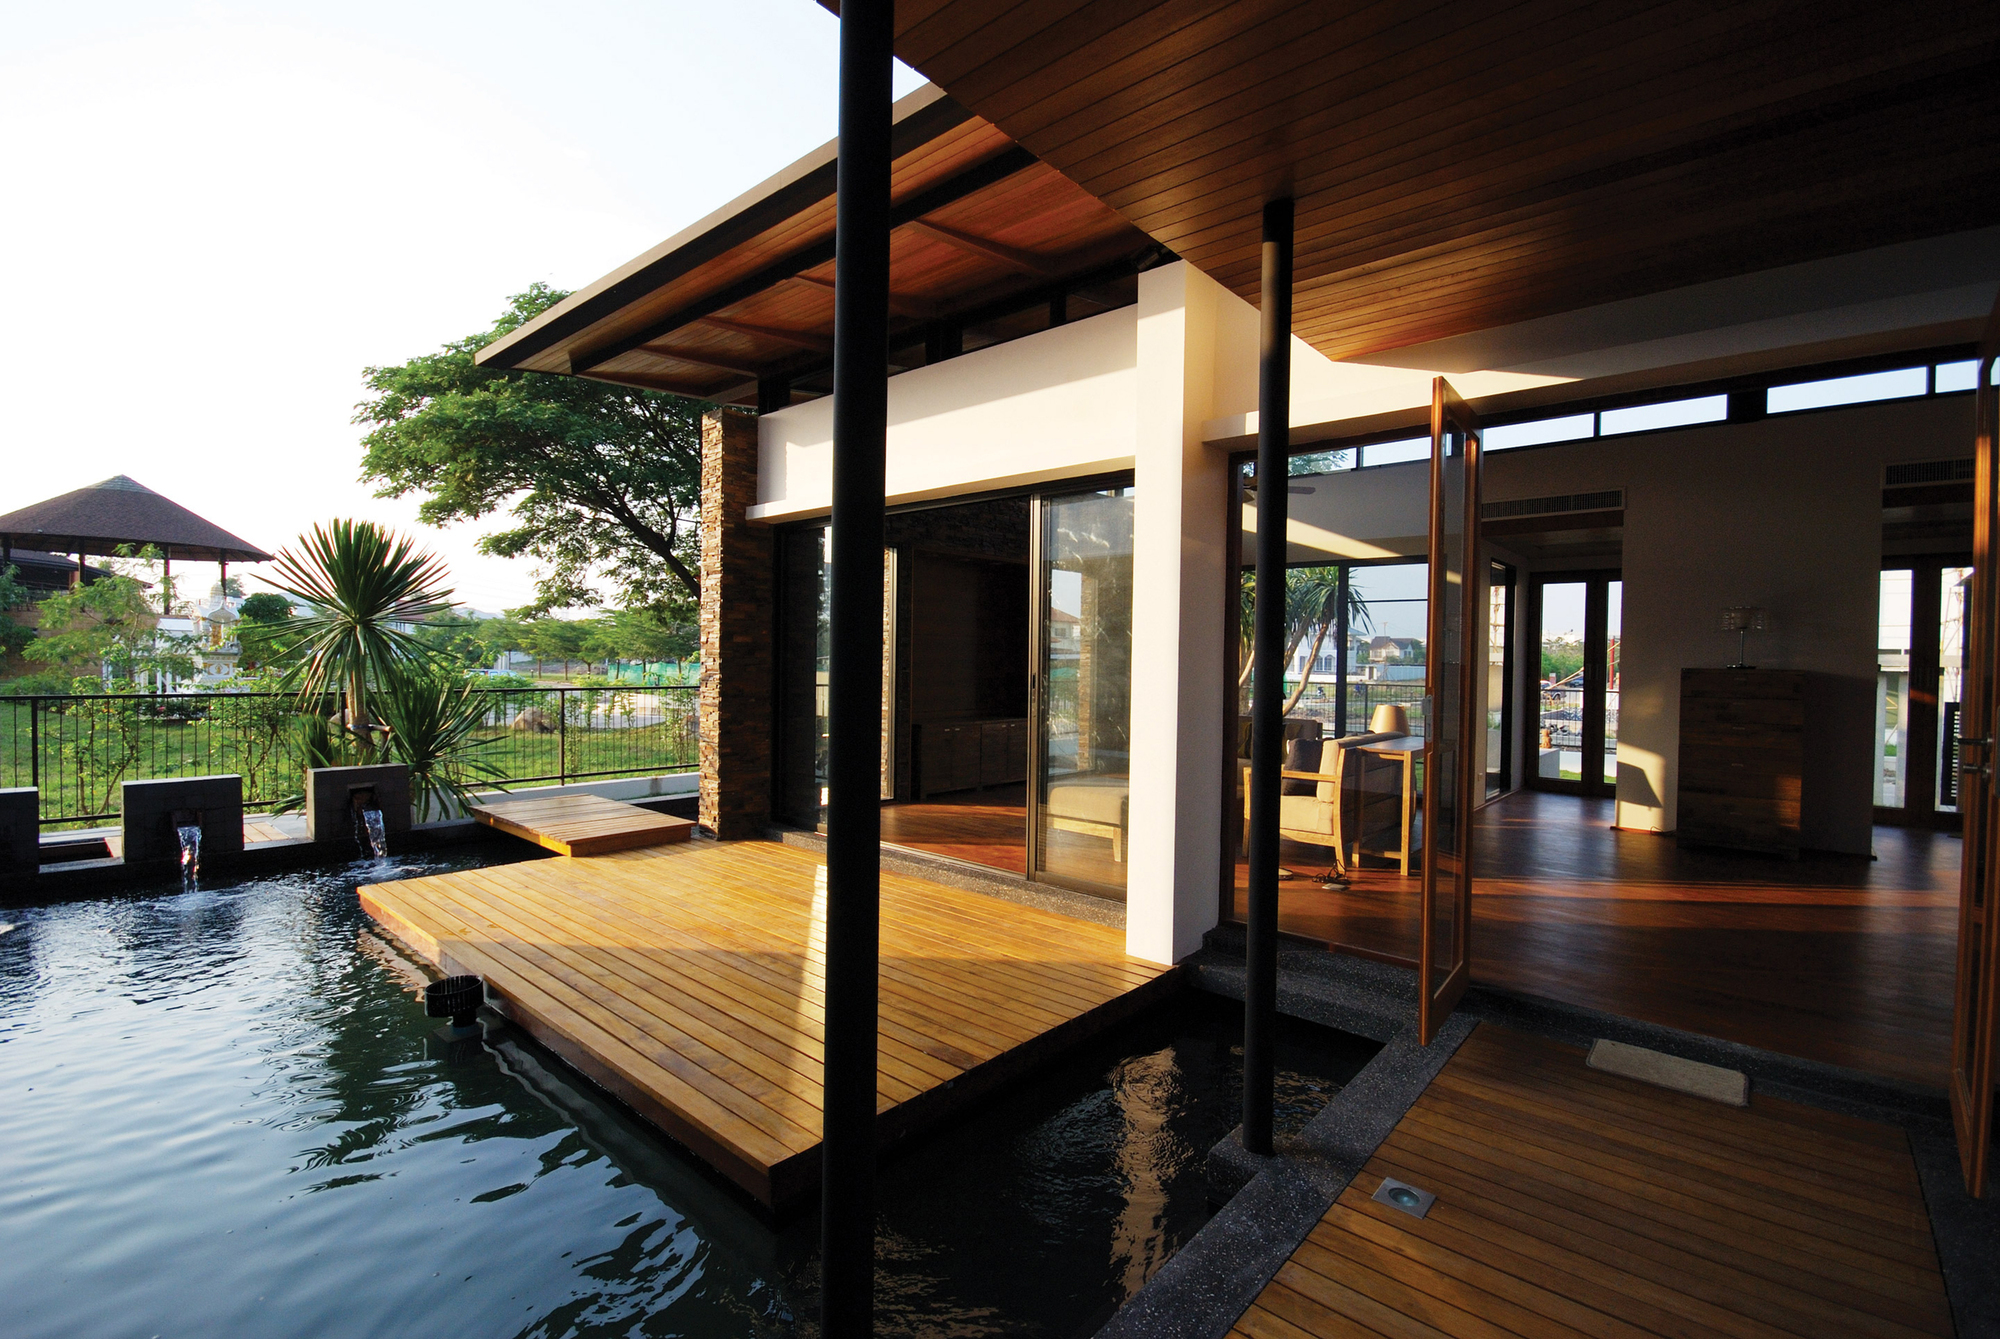 nature shui feng architect modern designs water archdaily junsekino feels floating its dornob 文章 出處